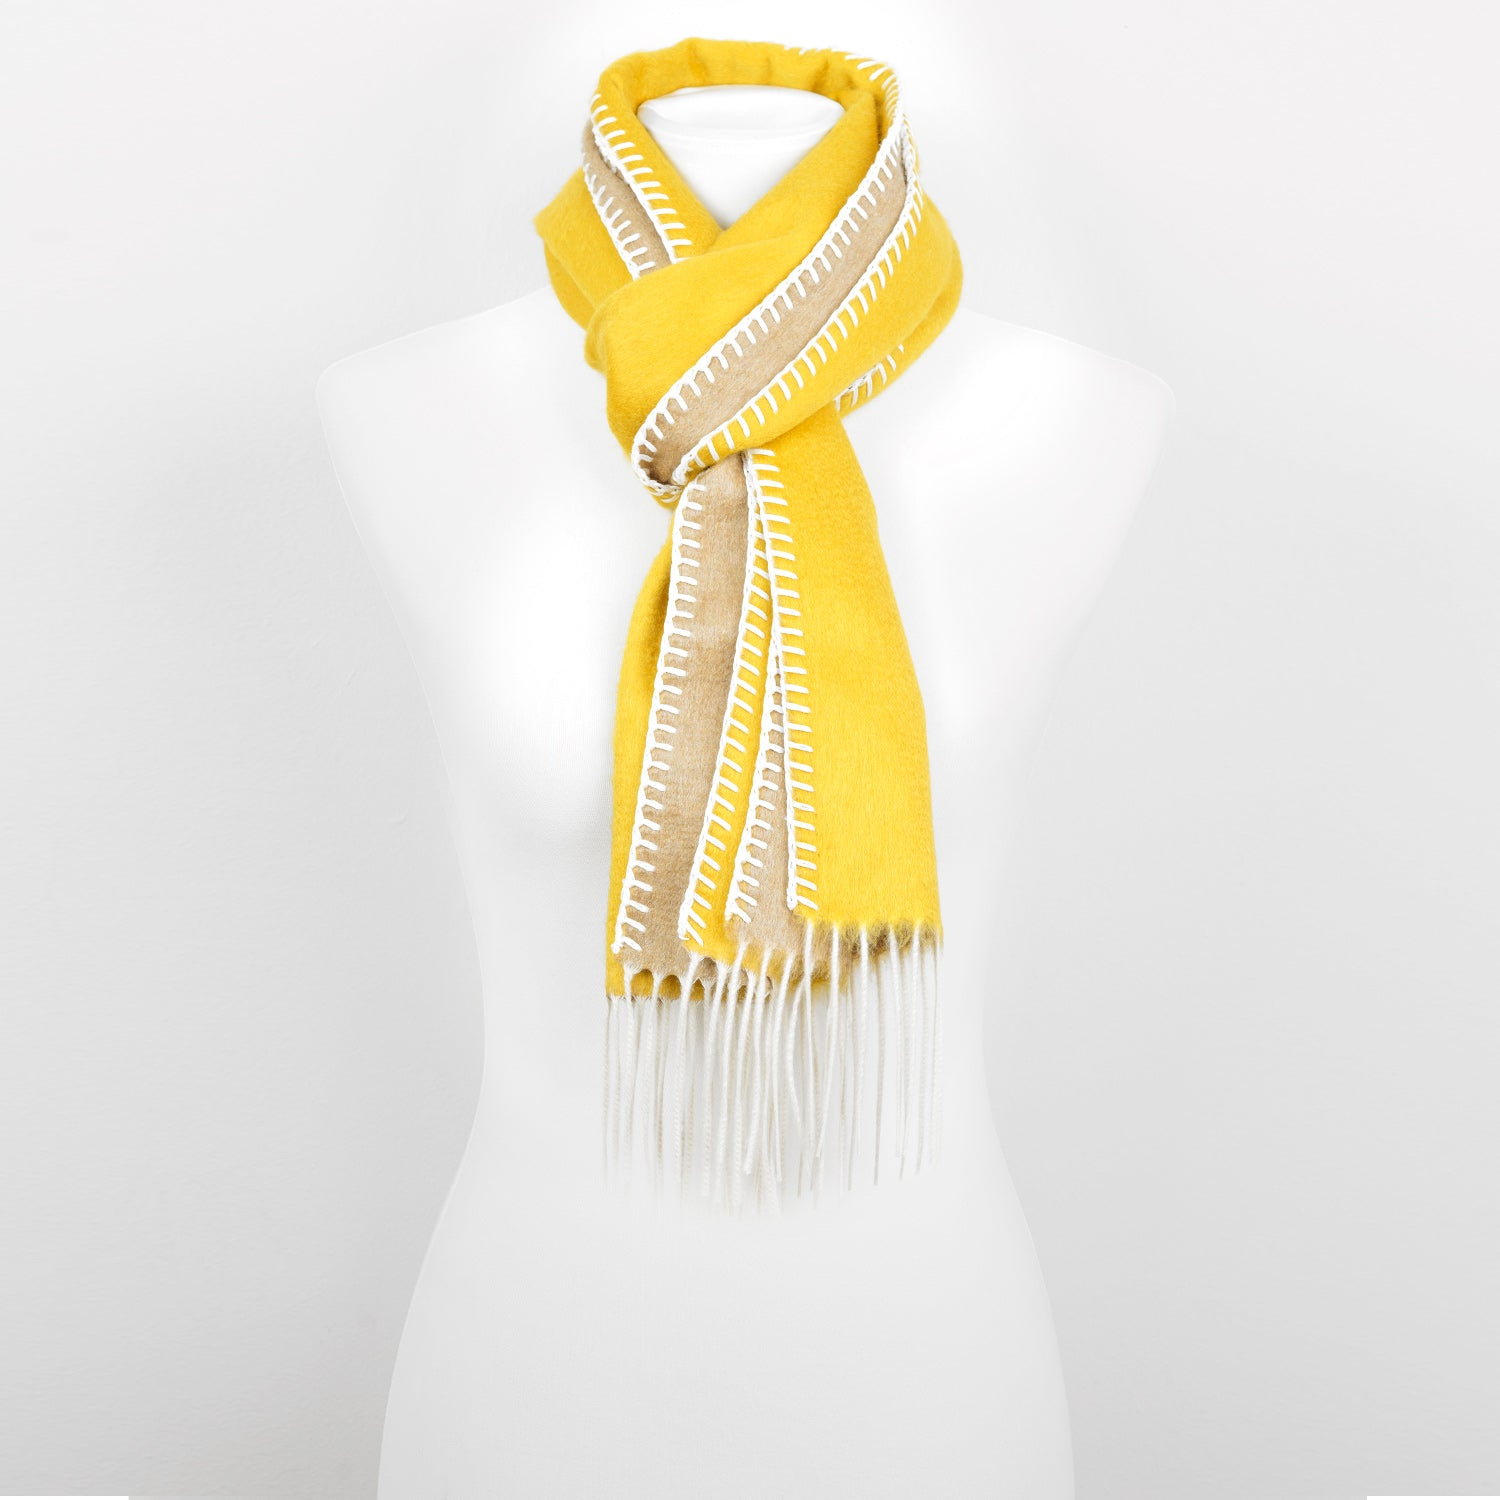 Doria & Dojola Roma Silk-Cashmere Scarf. 51% Silk 49% Cashmere 30 x 170 cm. 100% Made in Italy. Pictured: Yellow with Beige.